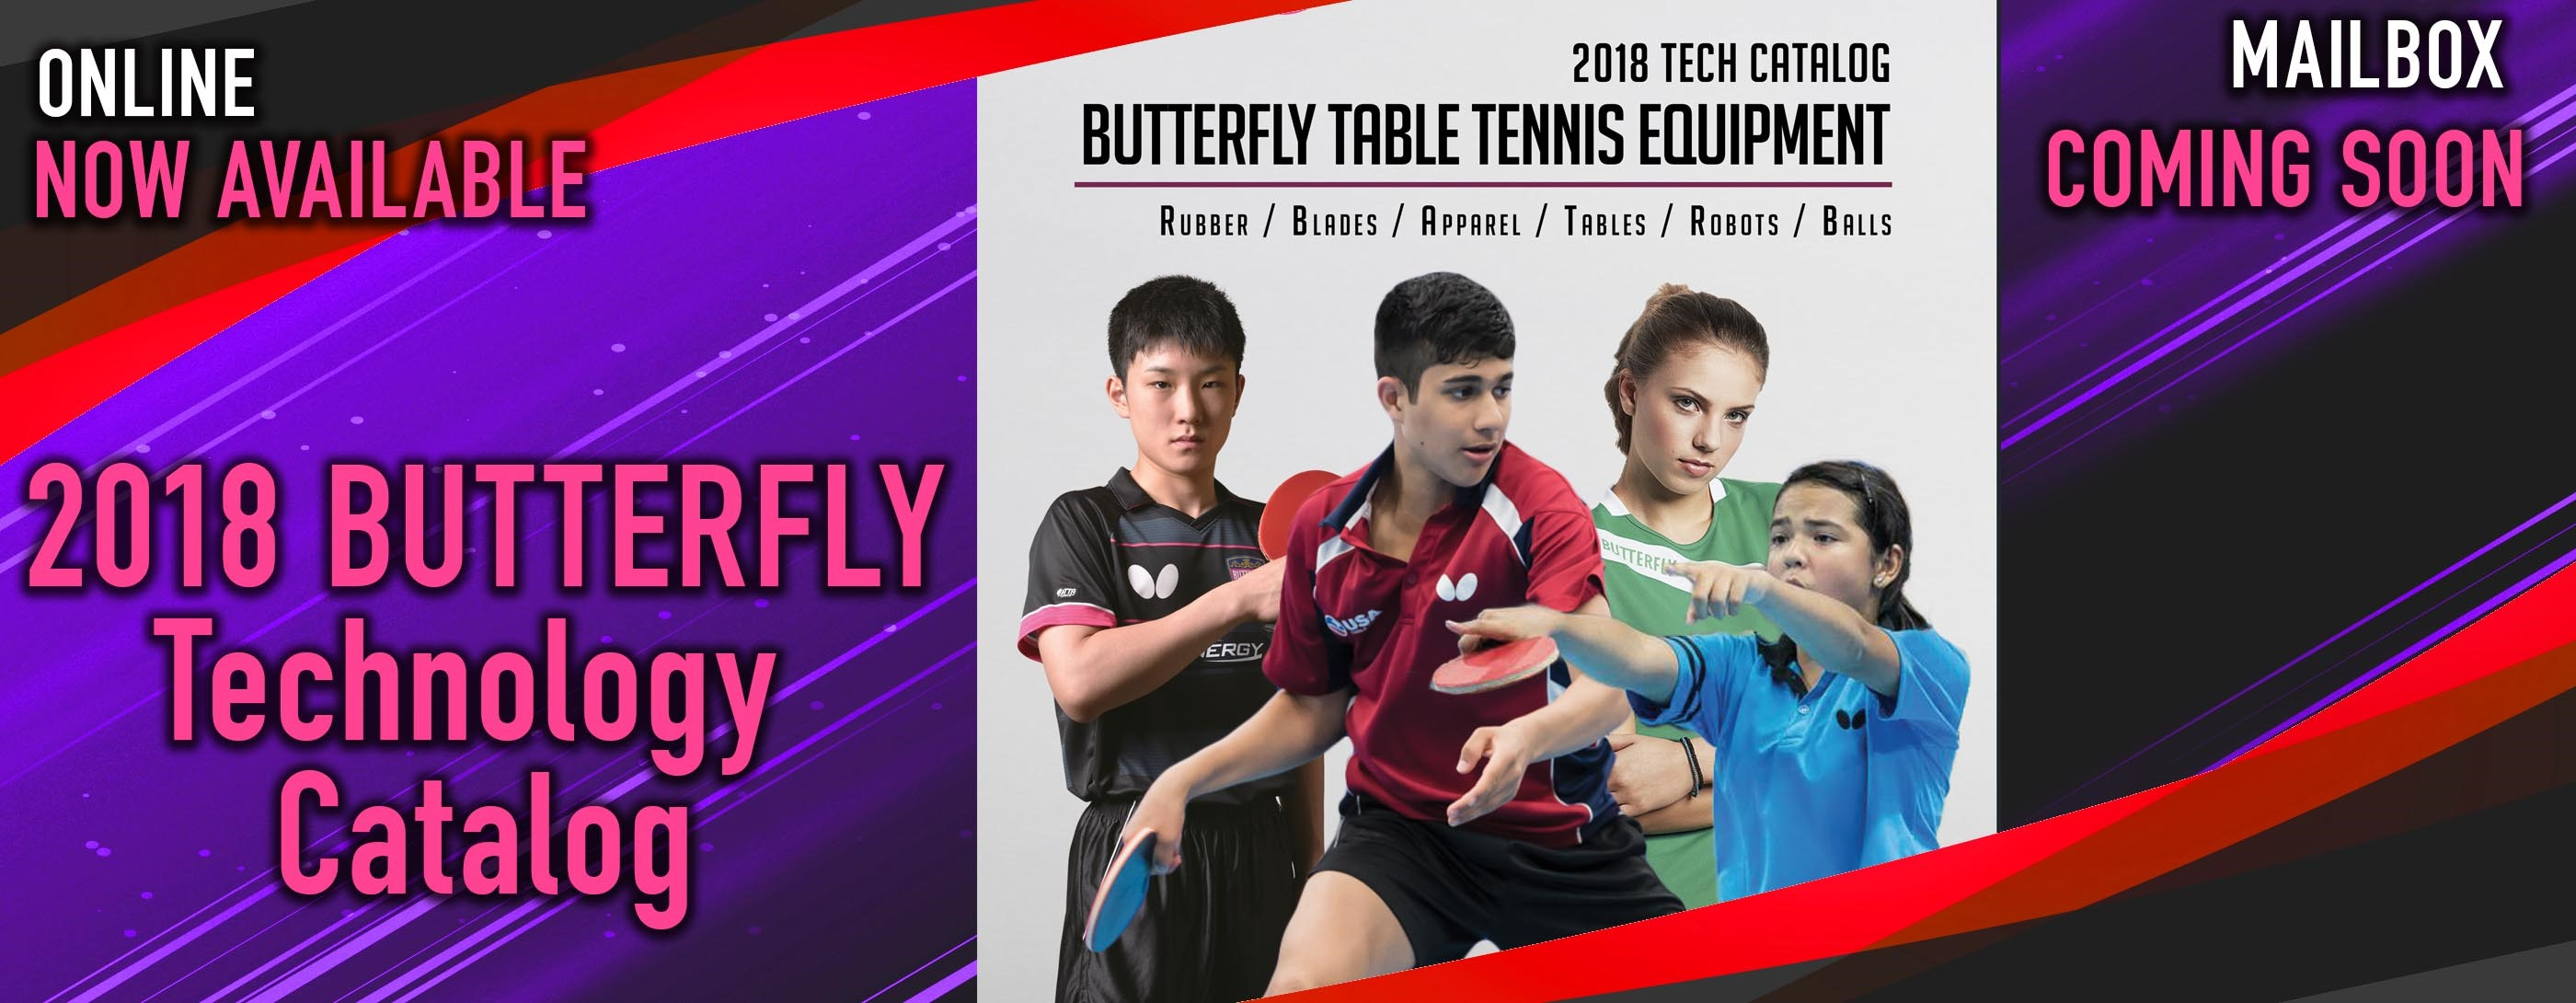 2018 Tech Catalog - Butterfly Table Tennis Equipment